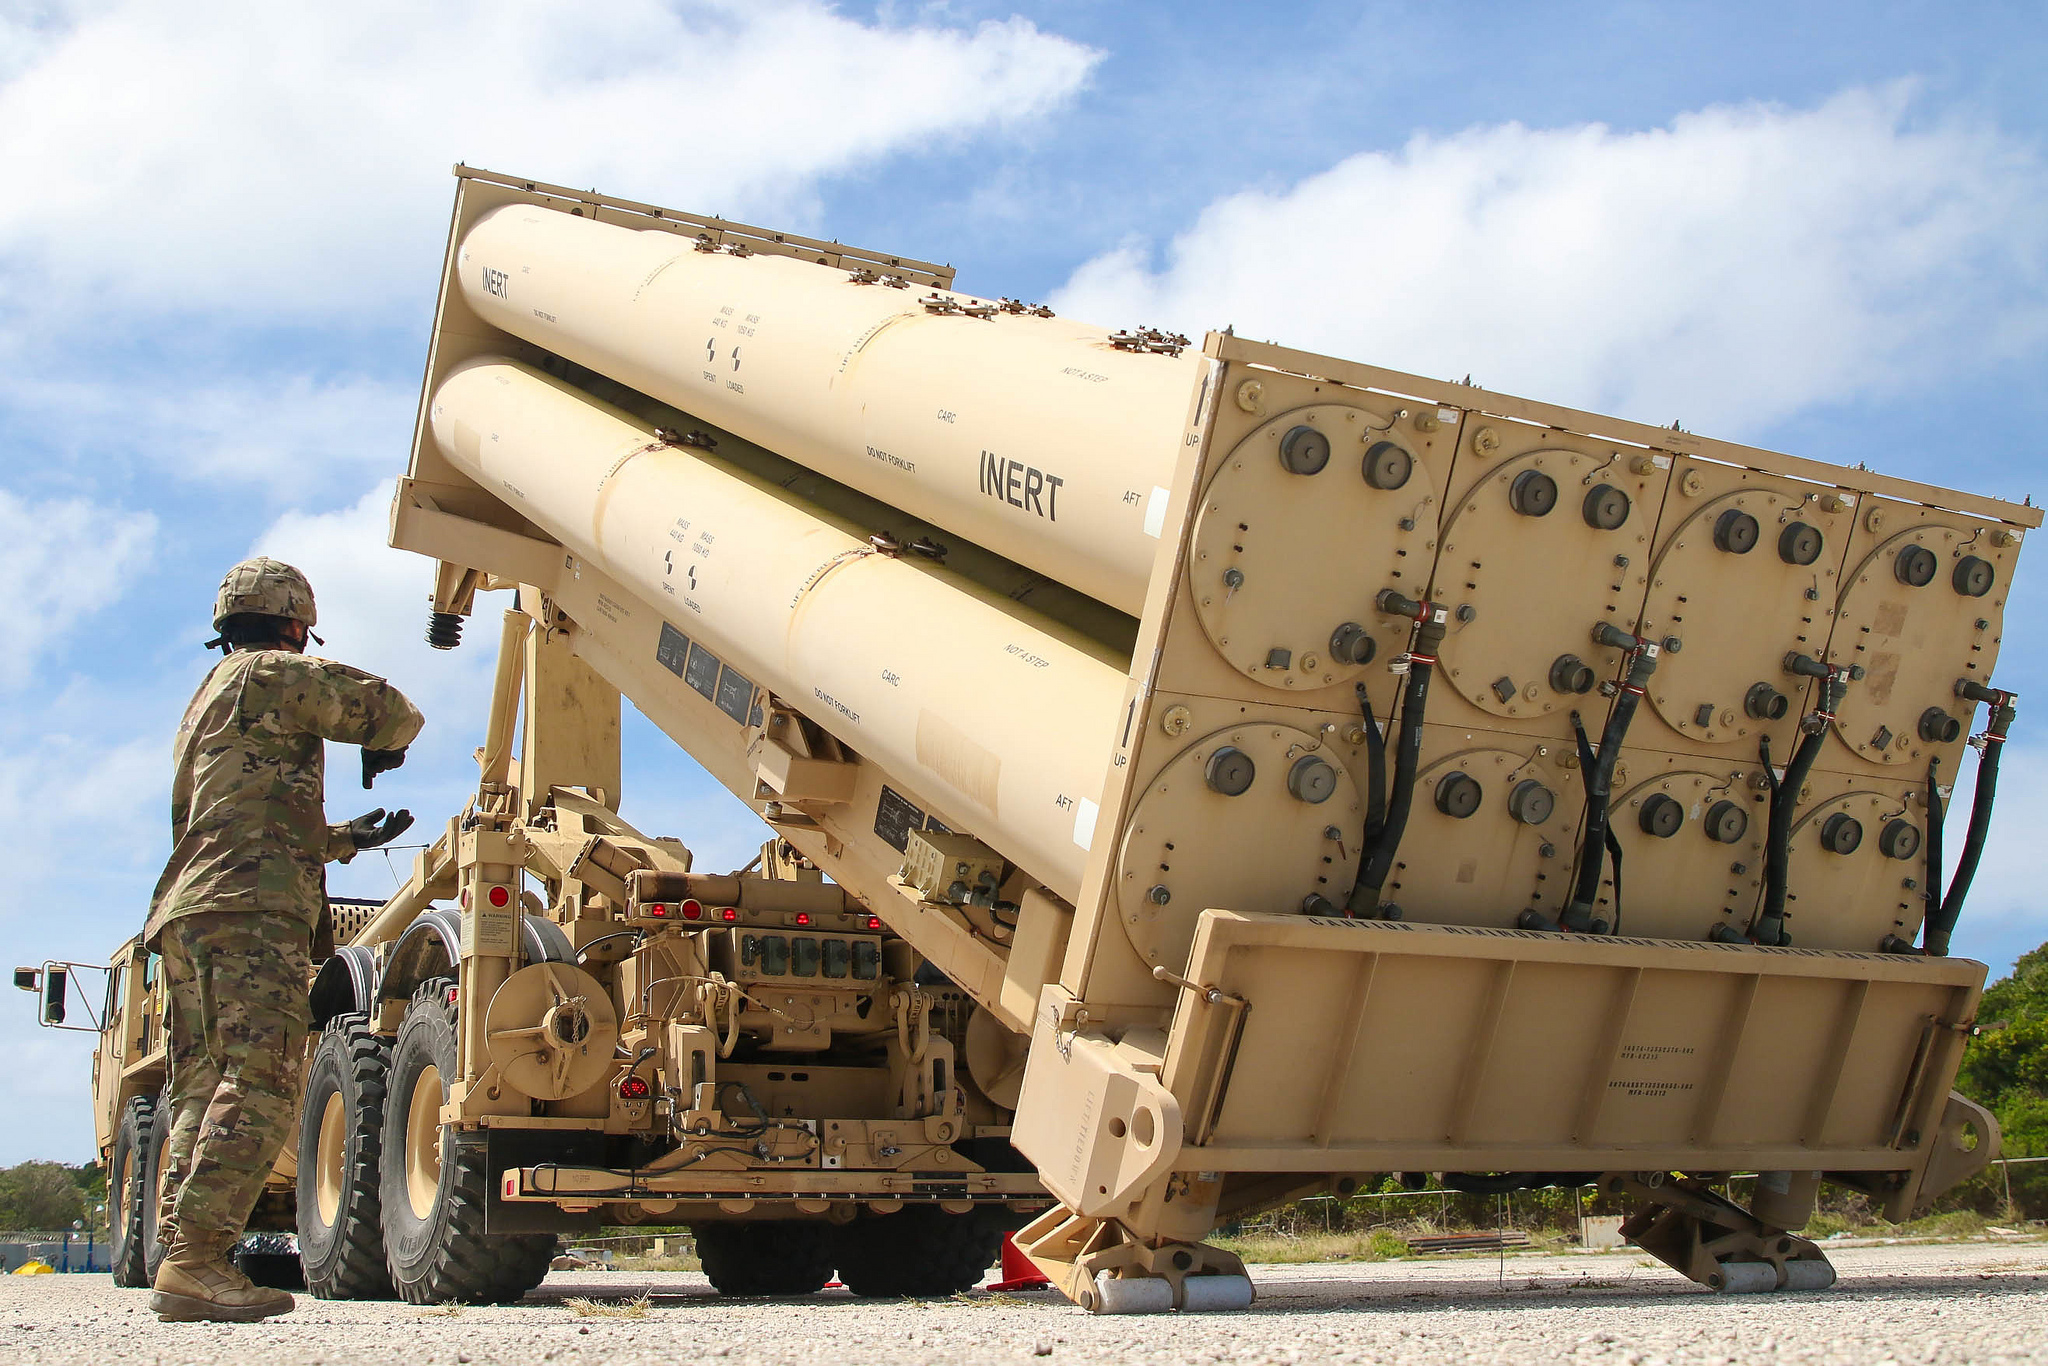 Cpl. Rogelio Argueta gives commands Feb. 6, 2019, during a practice missile reload and unload drills on a Terminal High Altitude Area Defense (THAAD) system trainer at Andersen Air Force Base, Guam. (Capt. Adan Cazarez/Army)